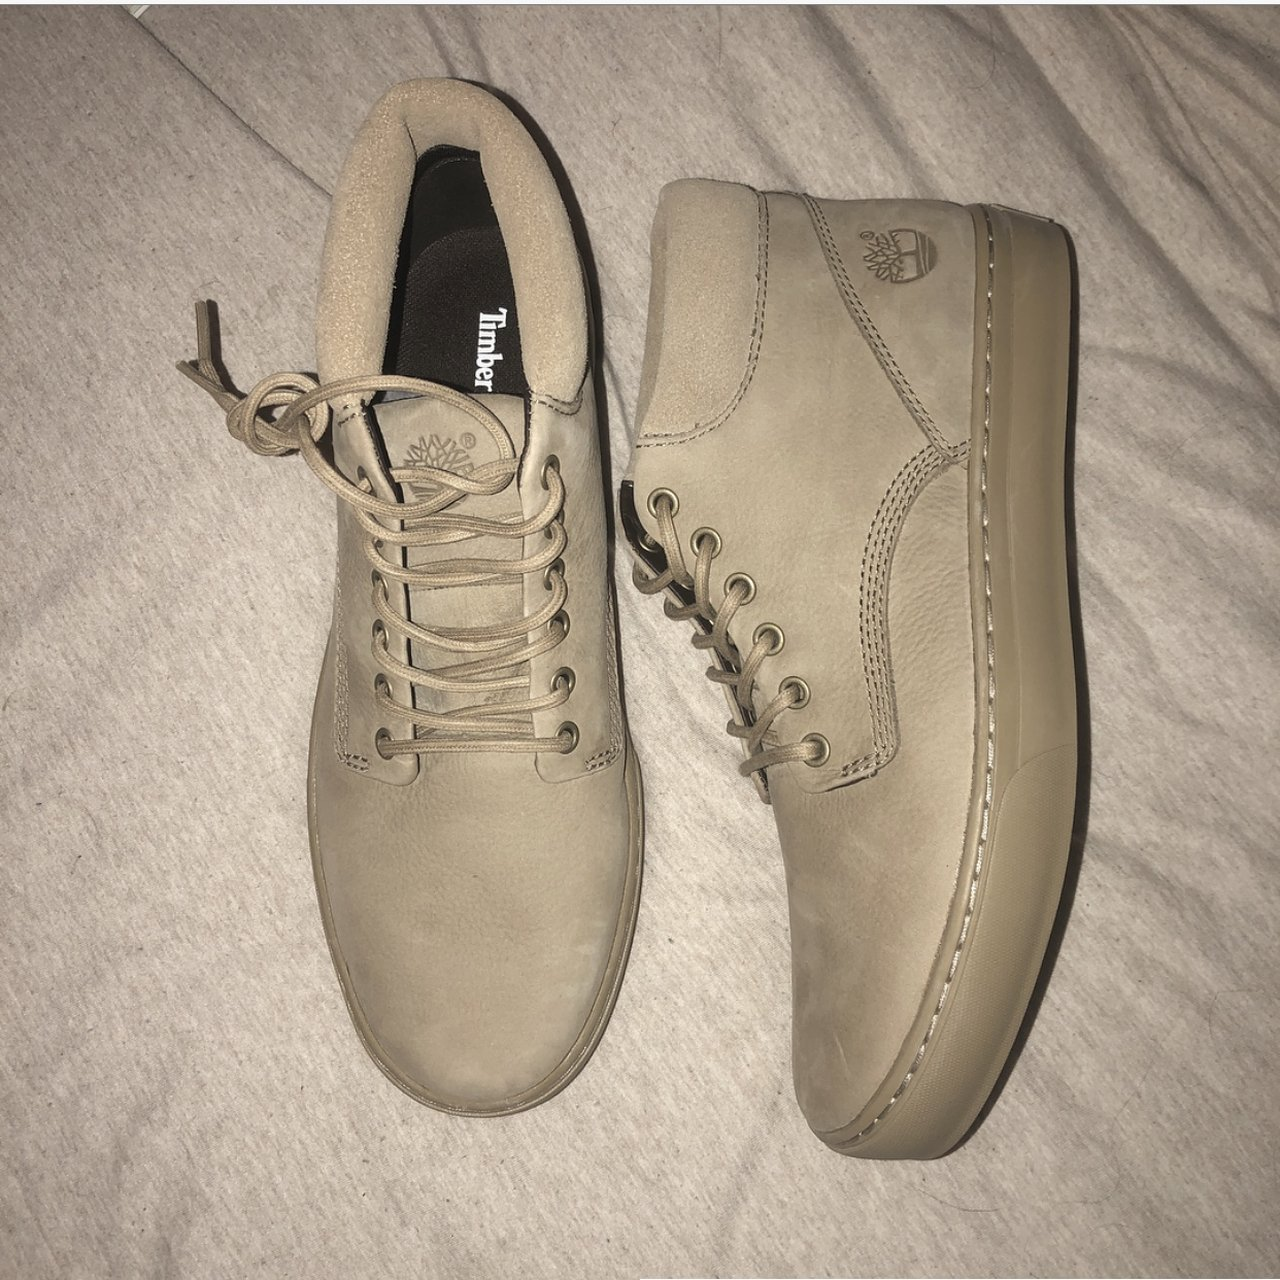 8bc0acb60 Brand new Timberland shoes